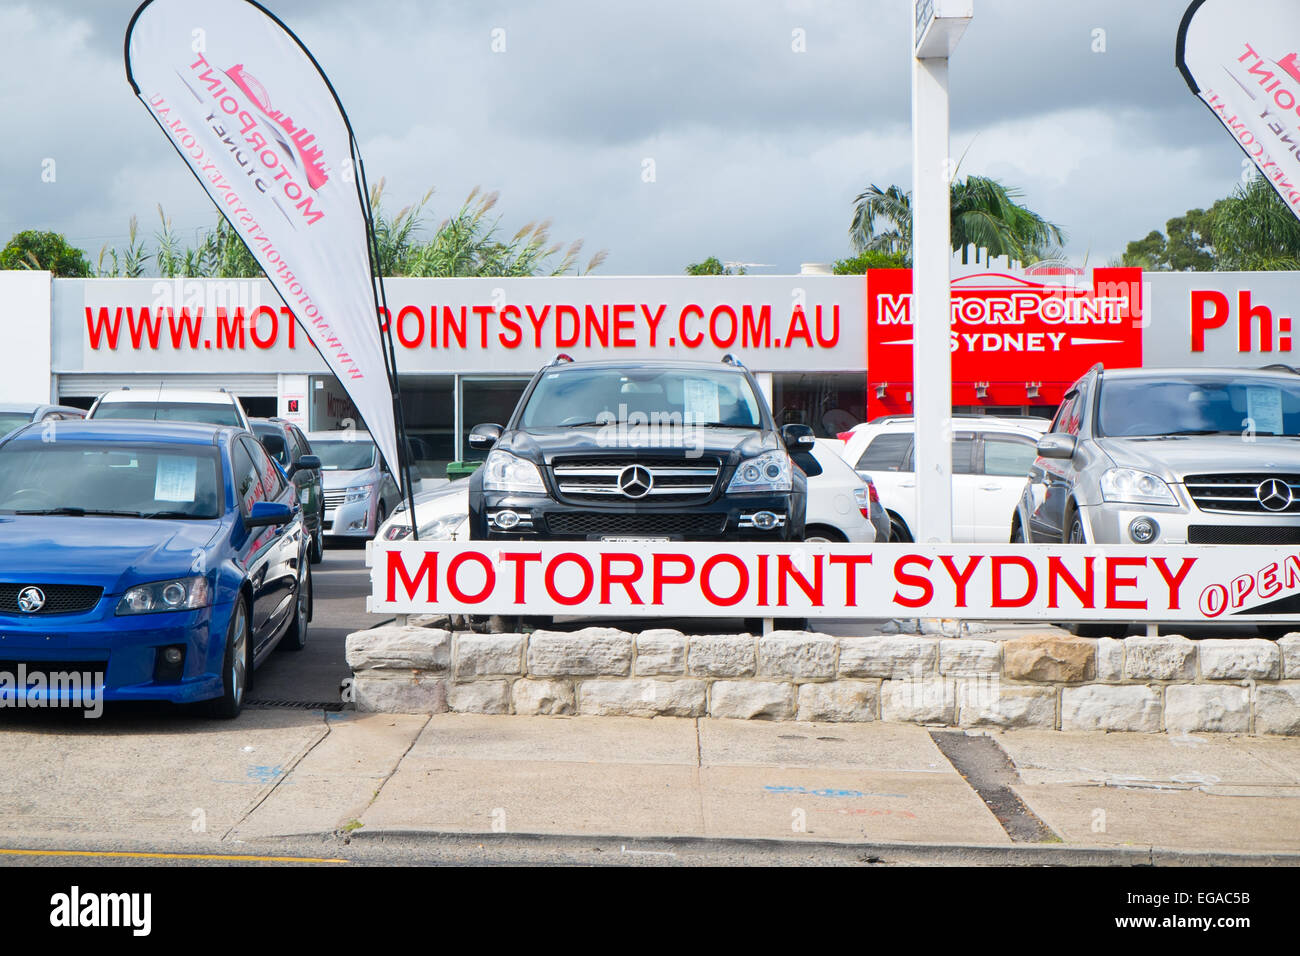 Motorpoint Sydney A Used Car Dealership Located On Parramatat Road In Stock Photo Alamy